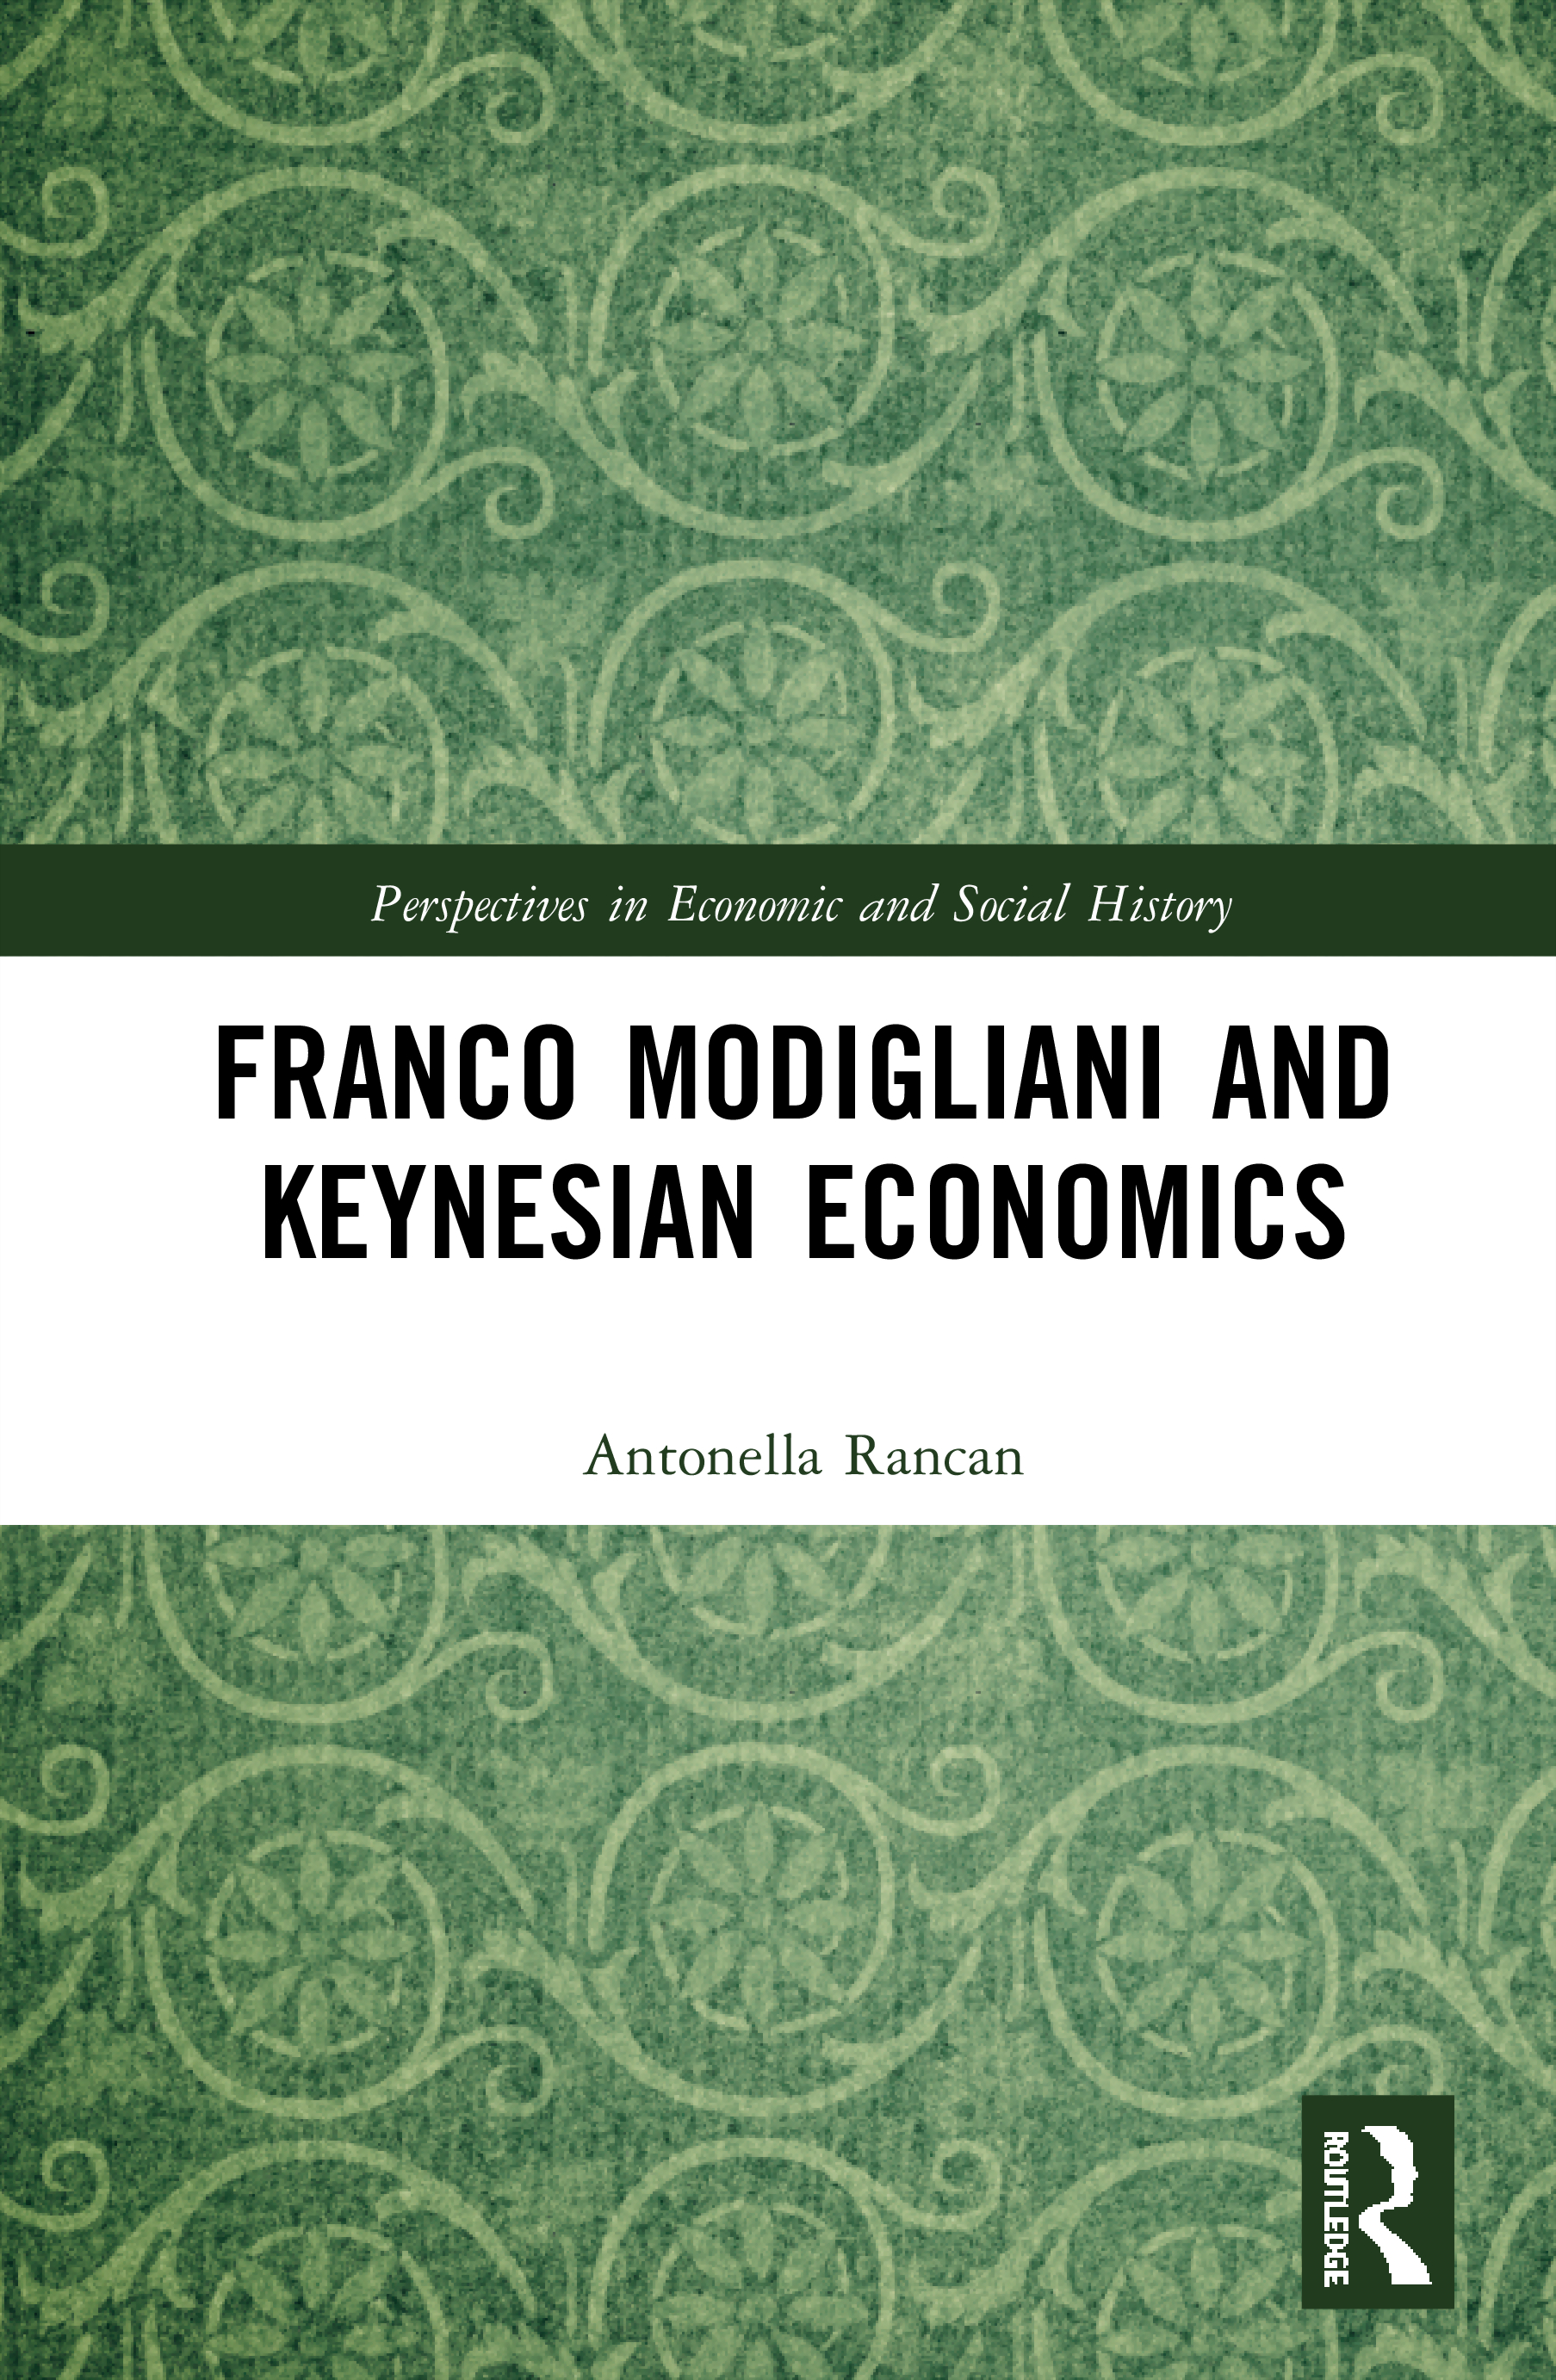 Franco Modigliani and Keynesian Economics: Theory, Facts and Policy, 1st Edition (Hardback) book cover